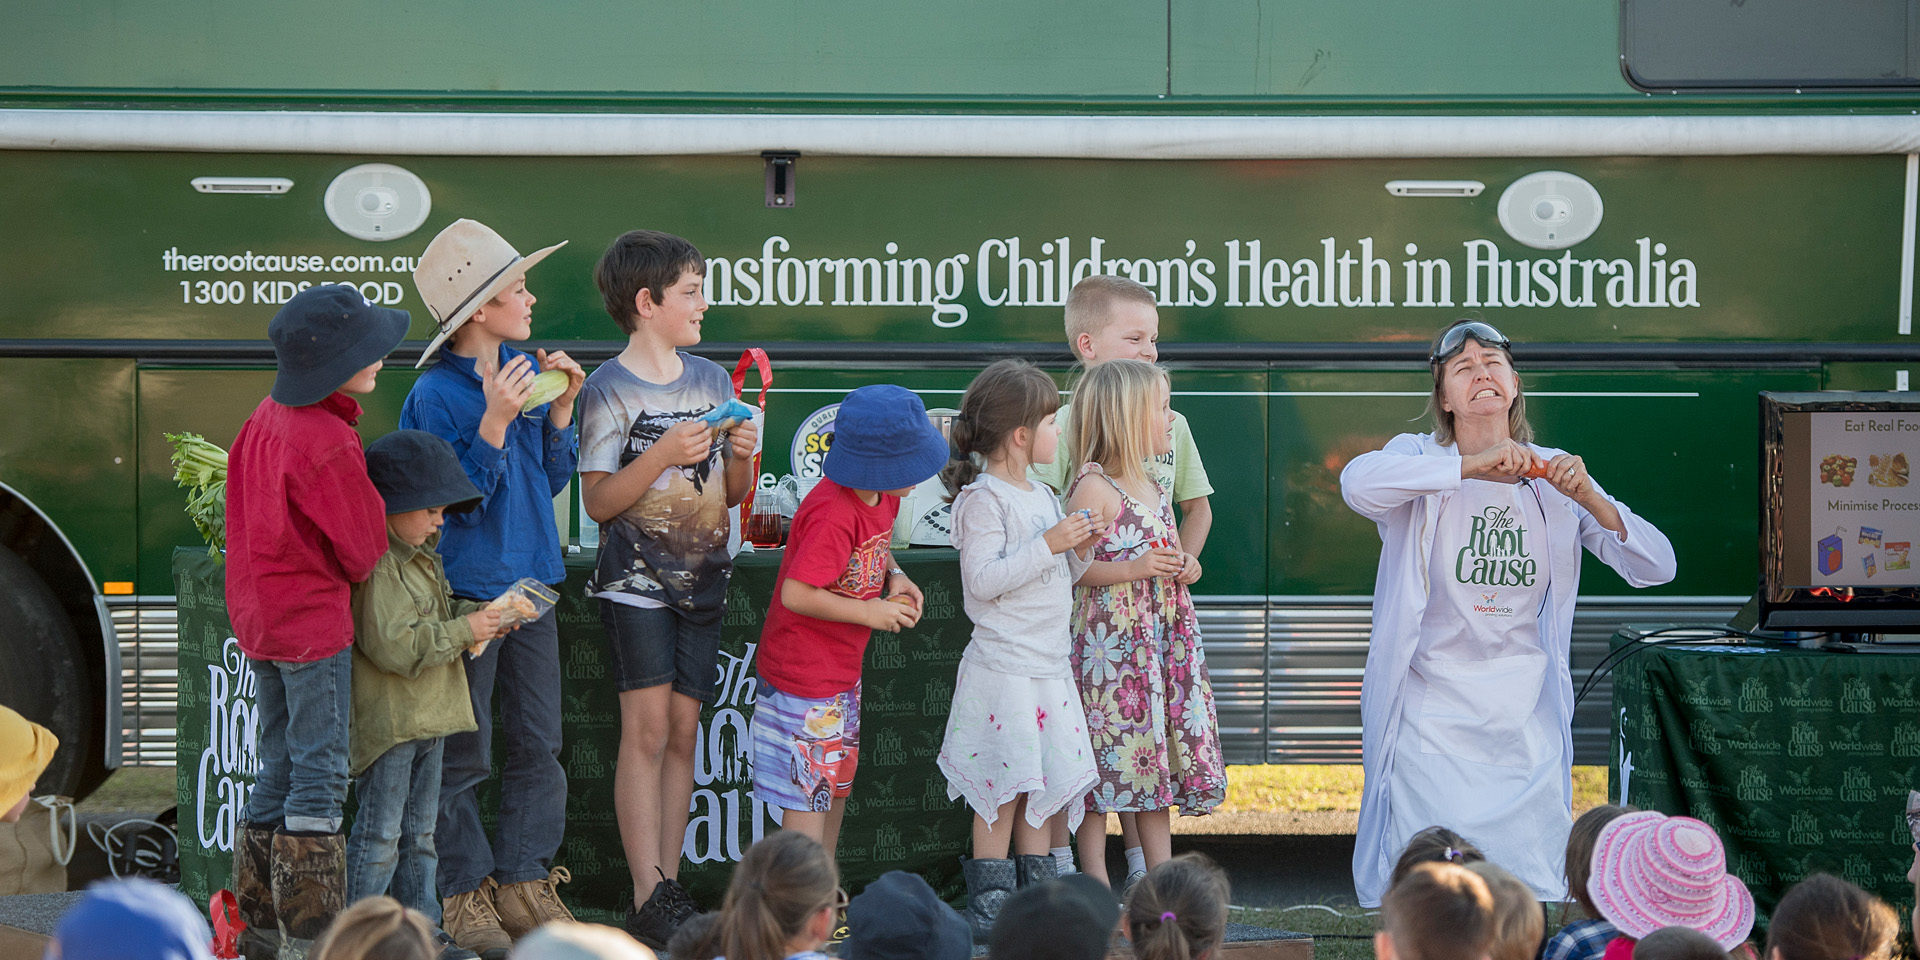 Bel Smith in action teaching children at Gympie QLD about real food vs processed food.